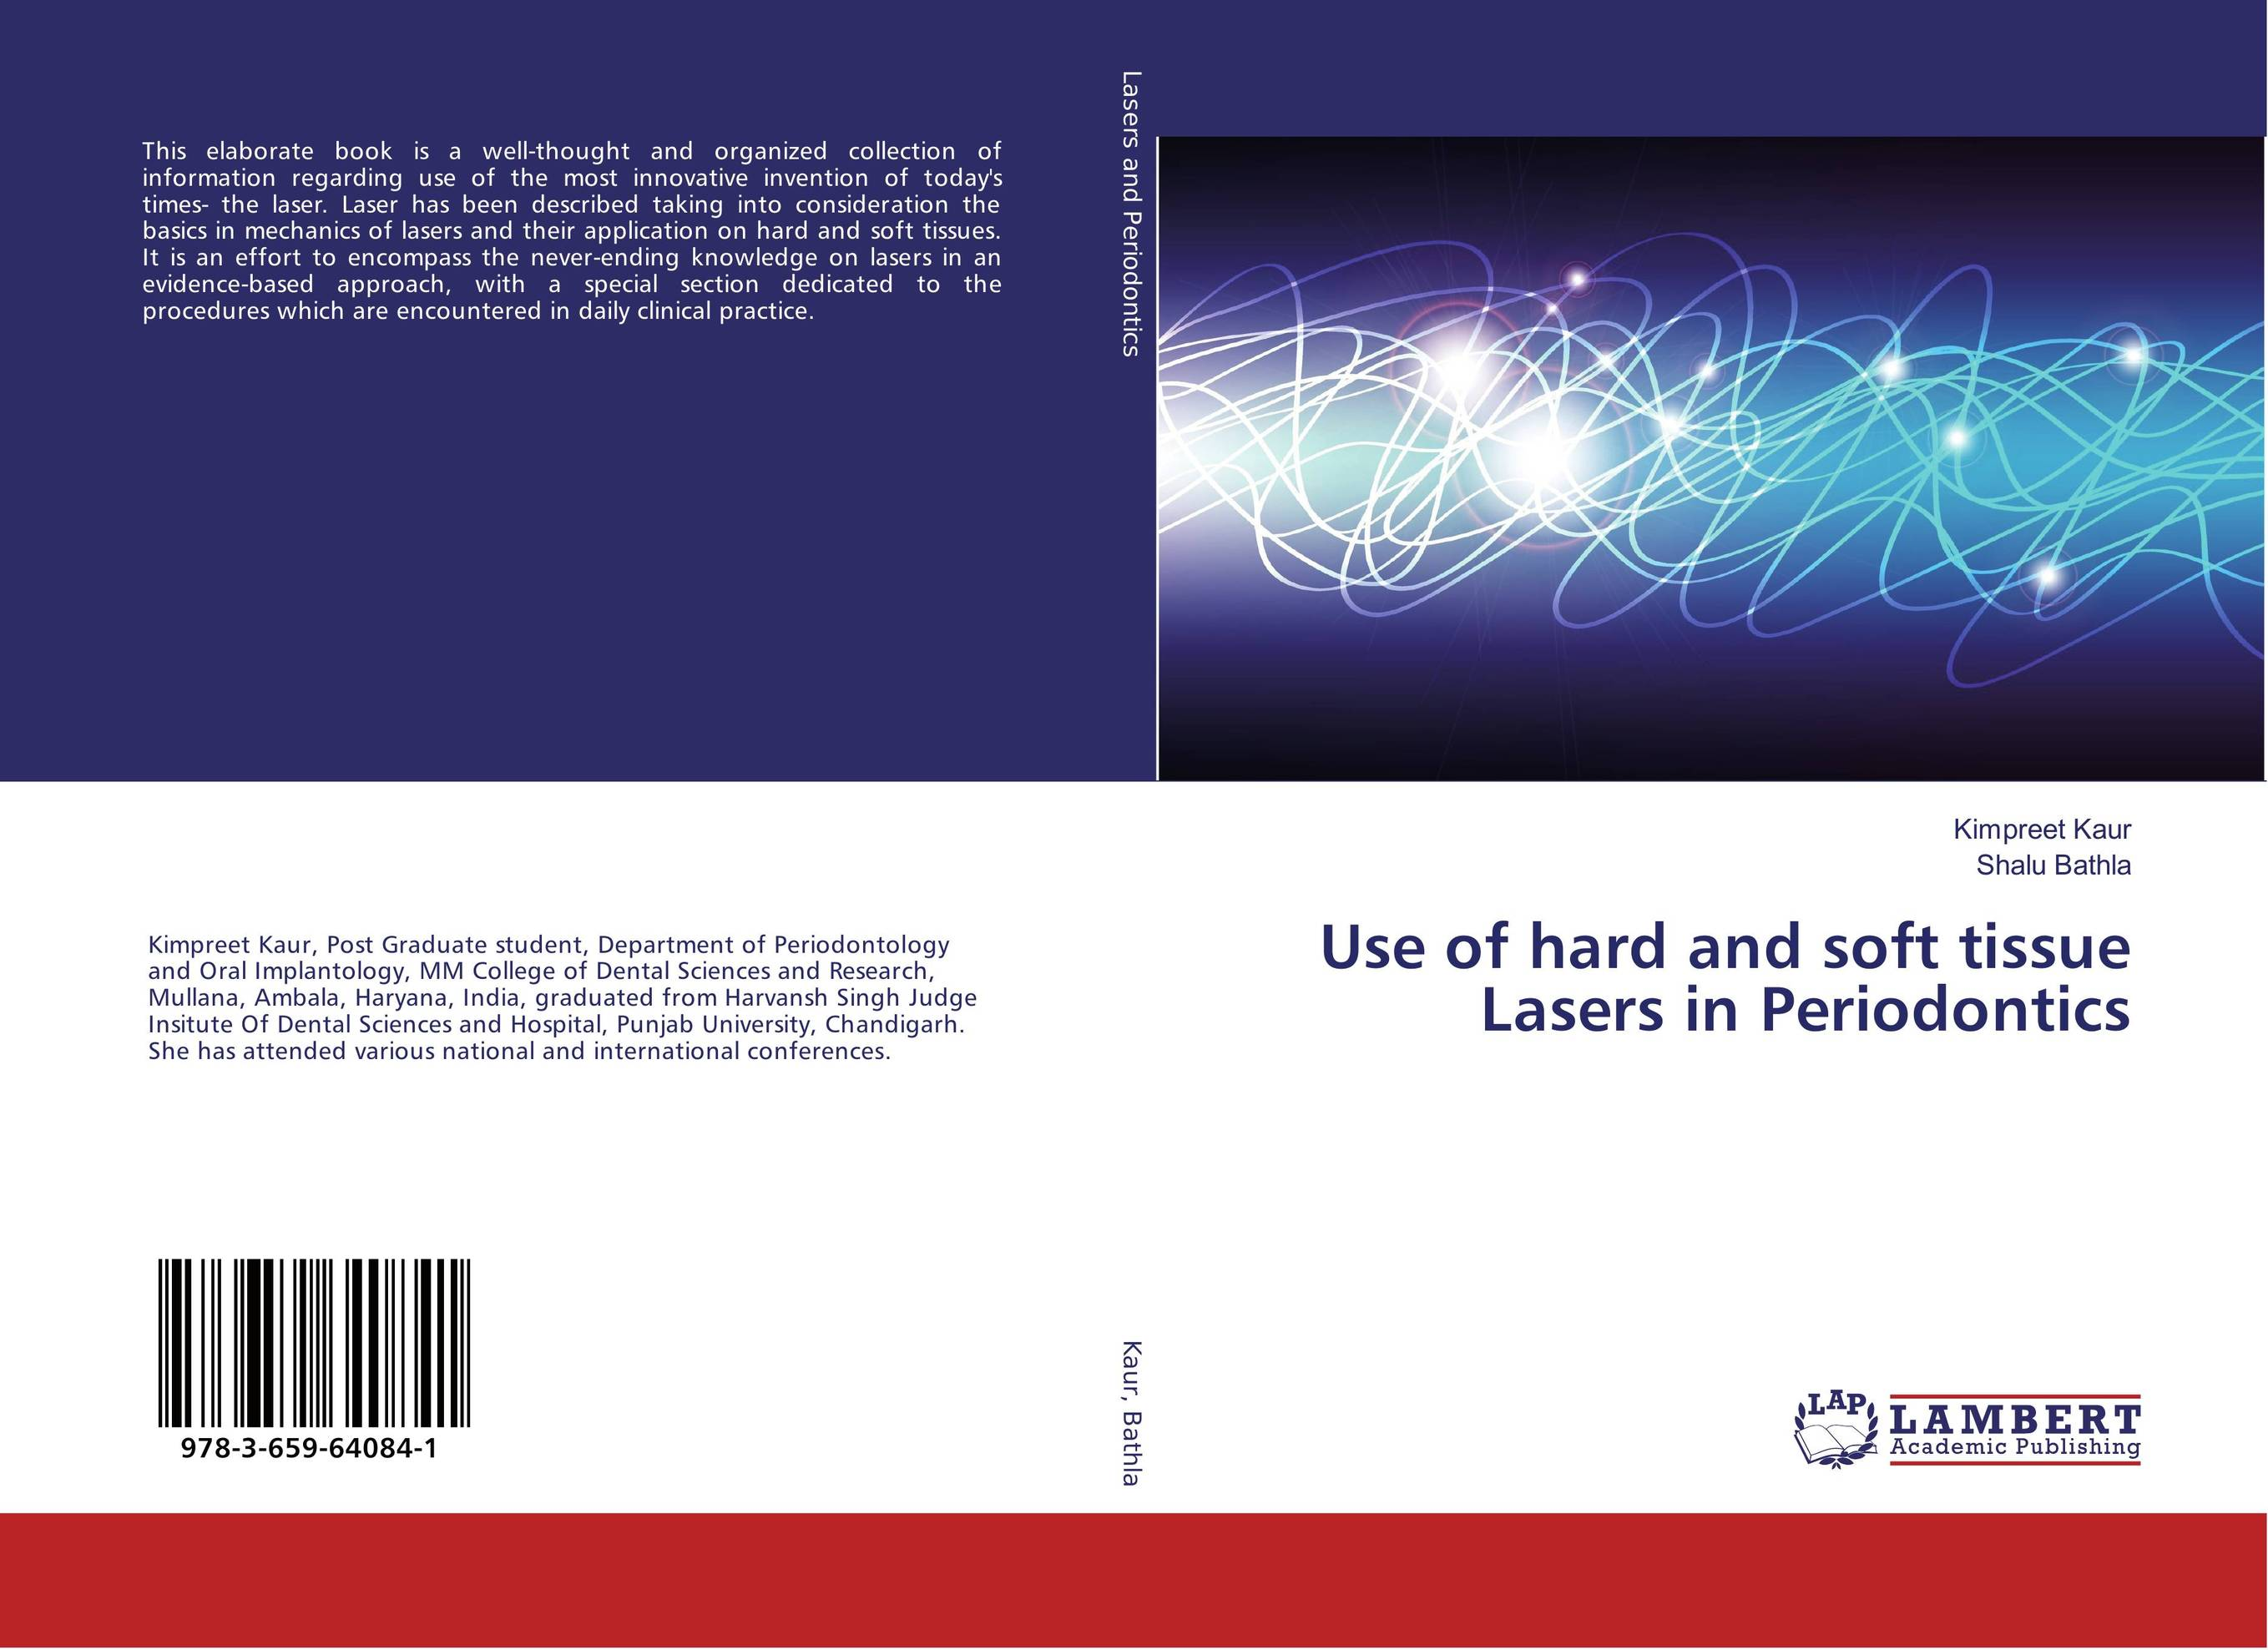 Use of hard and soft tissue Lasers in Periodontics rajveer kaur amarjit singh gill and paramjit kaur khinda diagnostic biomarkers in periodontics